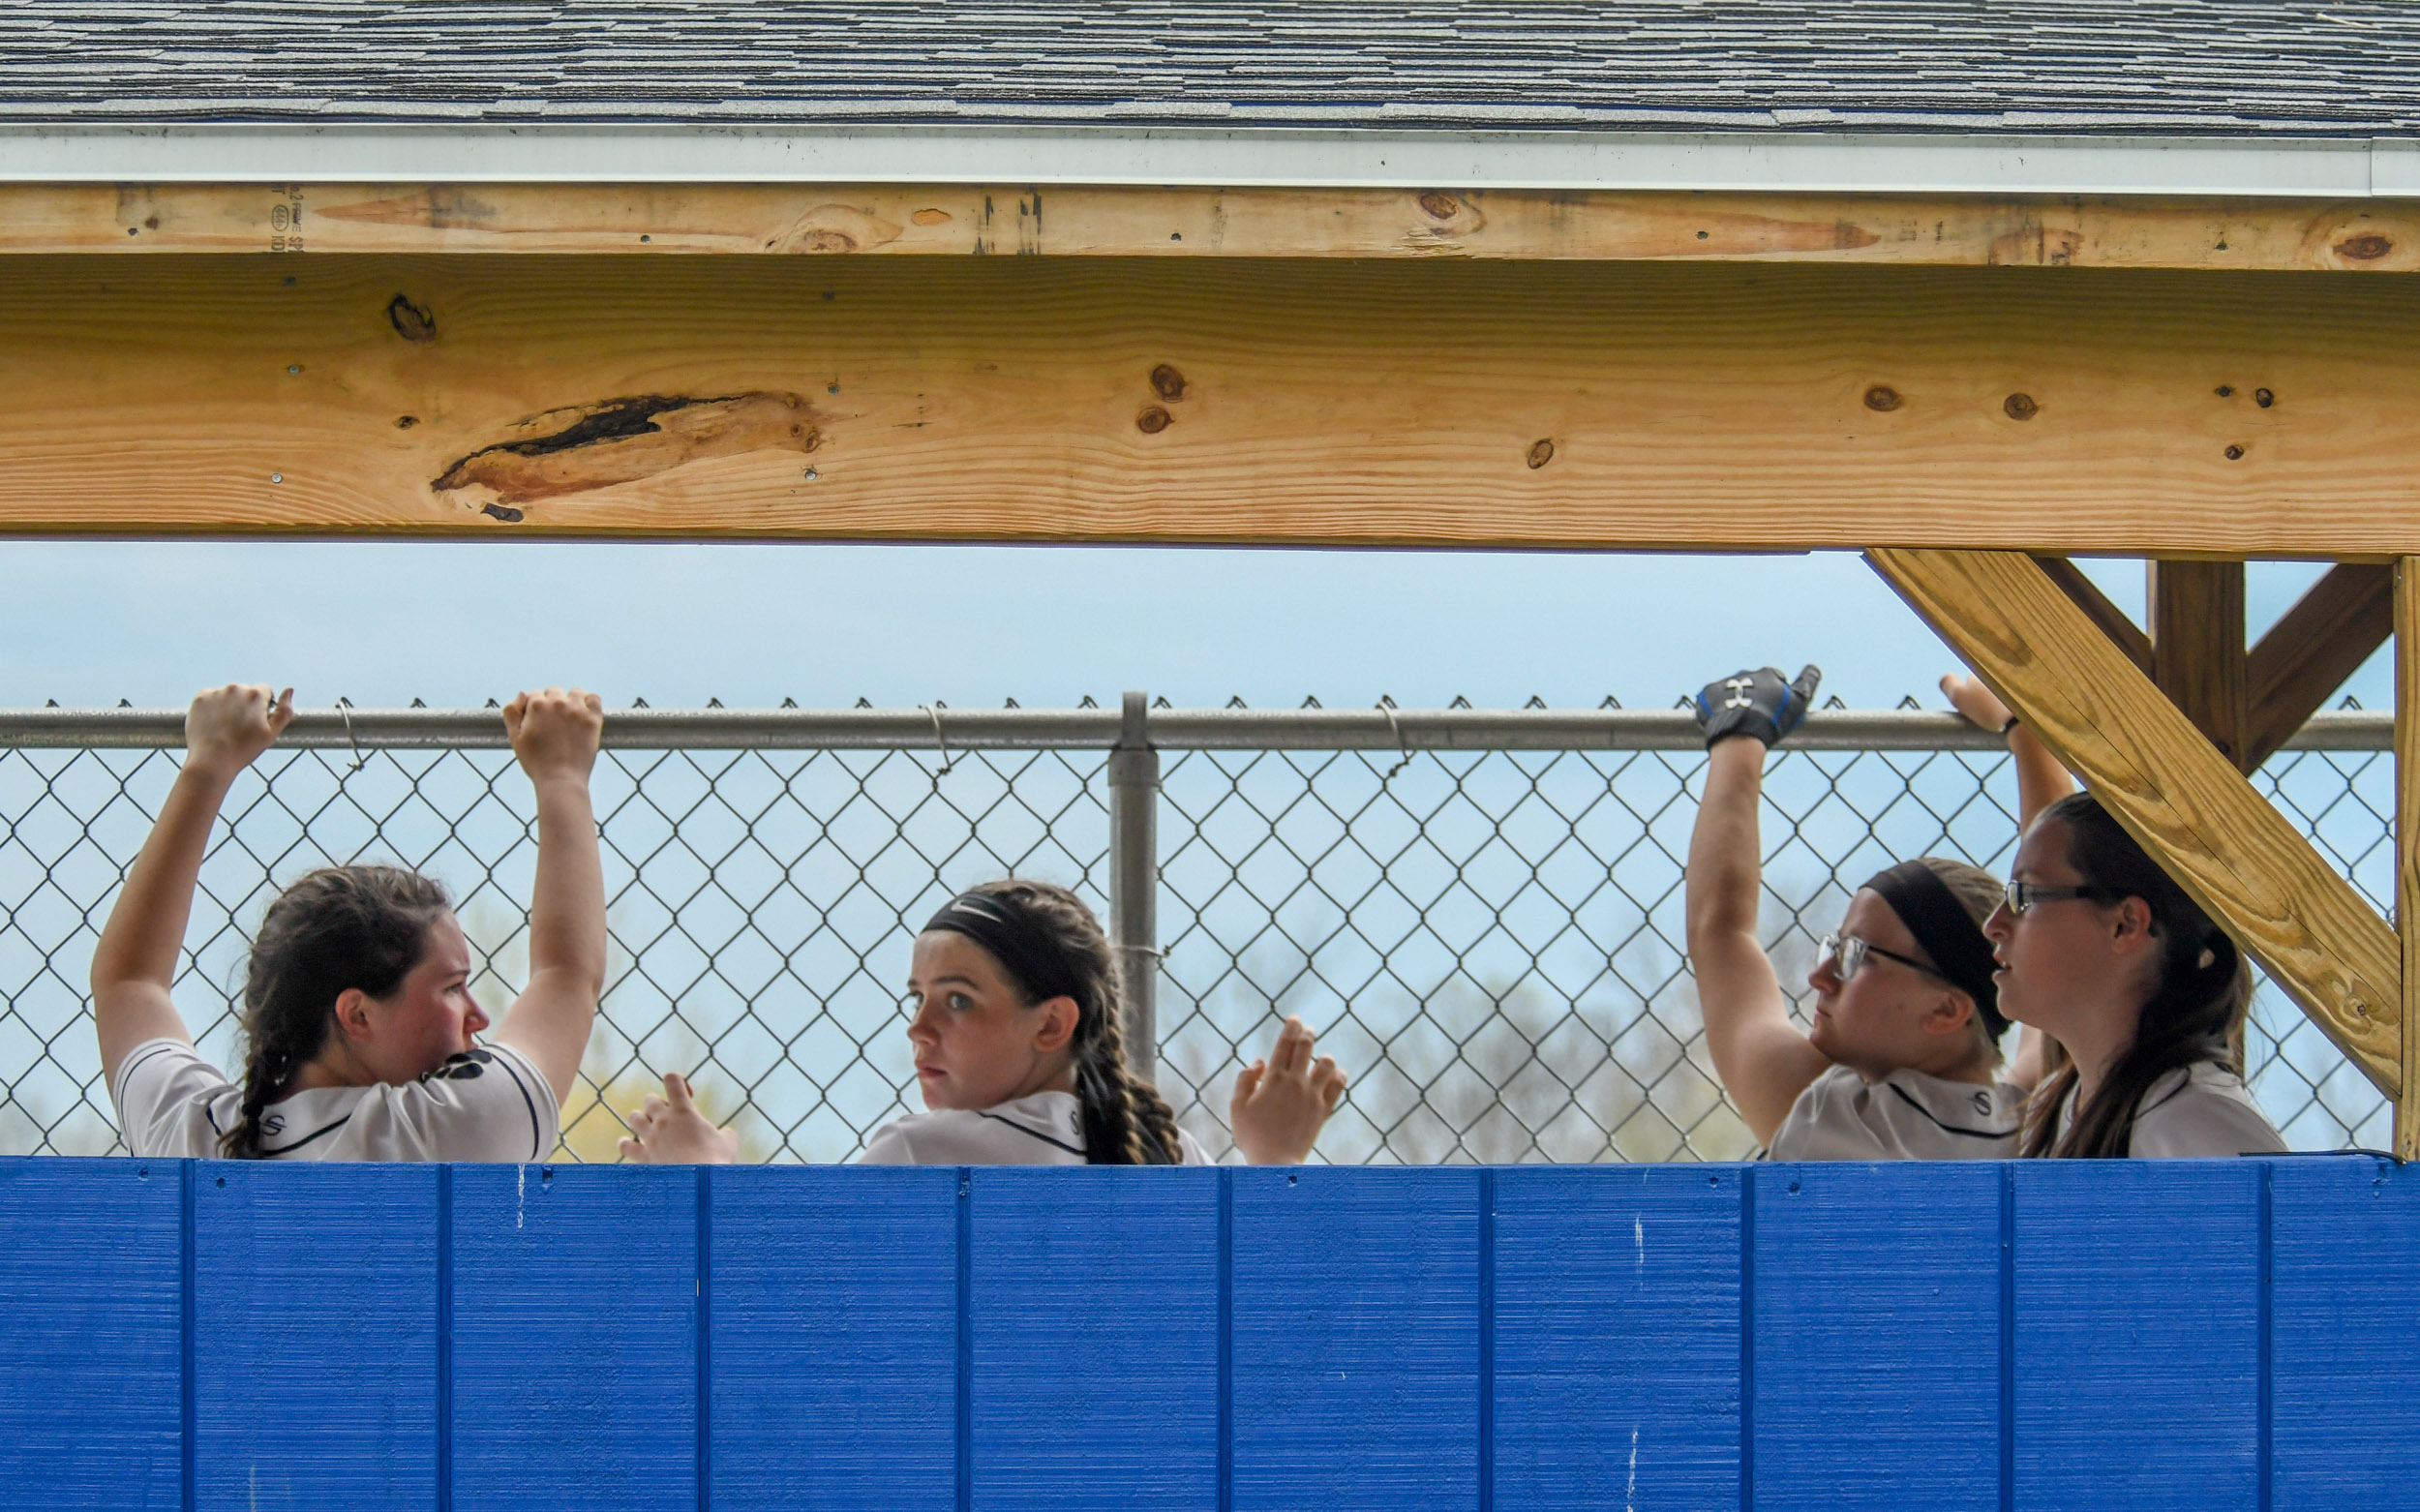 Cohoes varsity softball players grasp the outer fencing of the dugout during a game against Greenfield at Cohoes High School in Cohoes, N.Y., on Thursday, May 3, 2018.